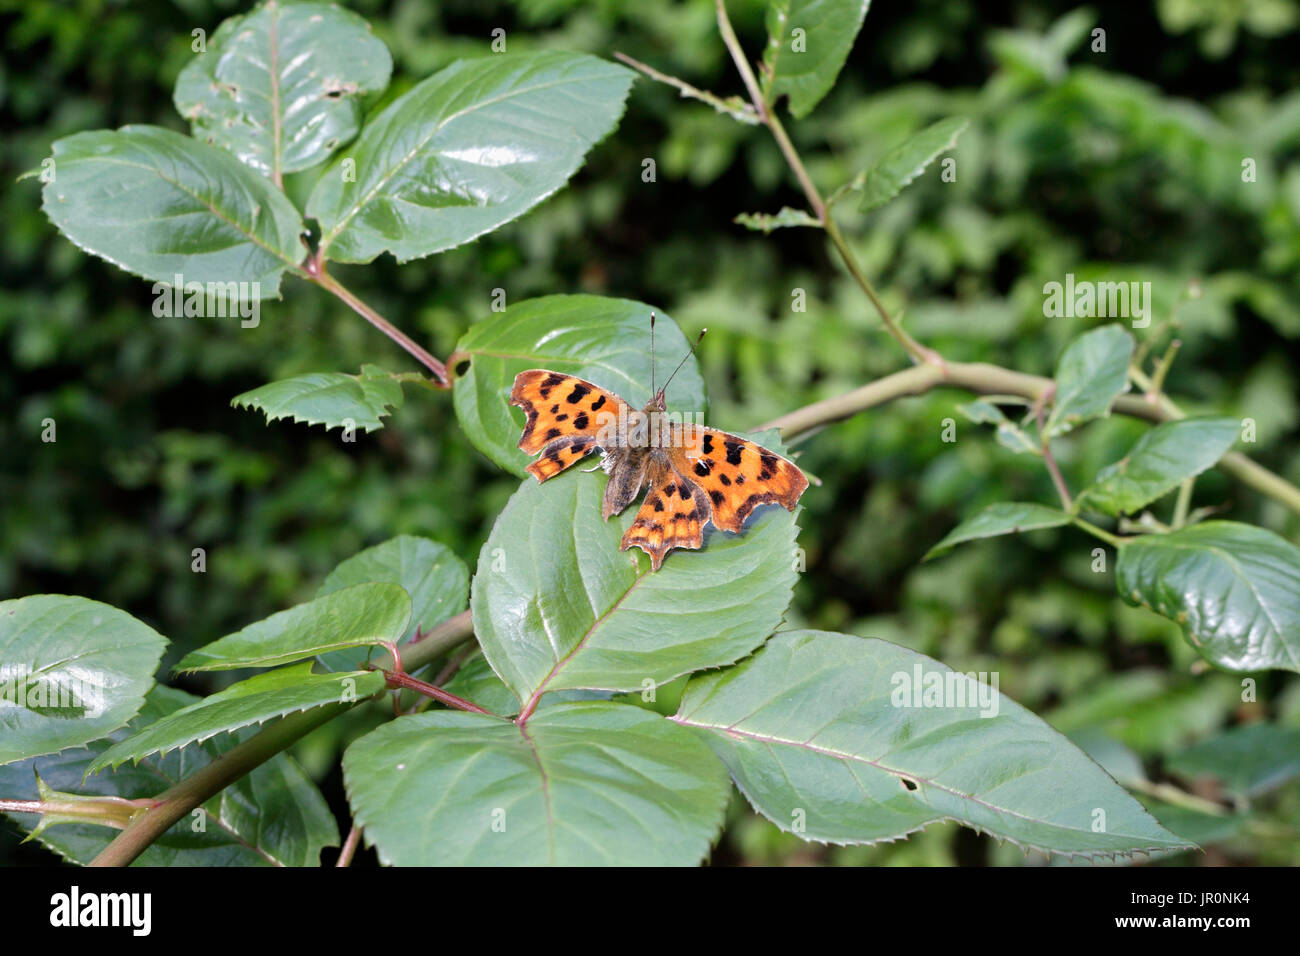 Comma butterfly with damaged rear wing - Stock Image